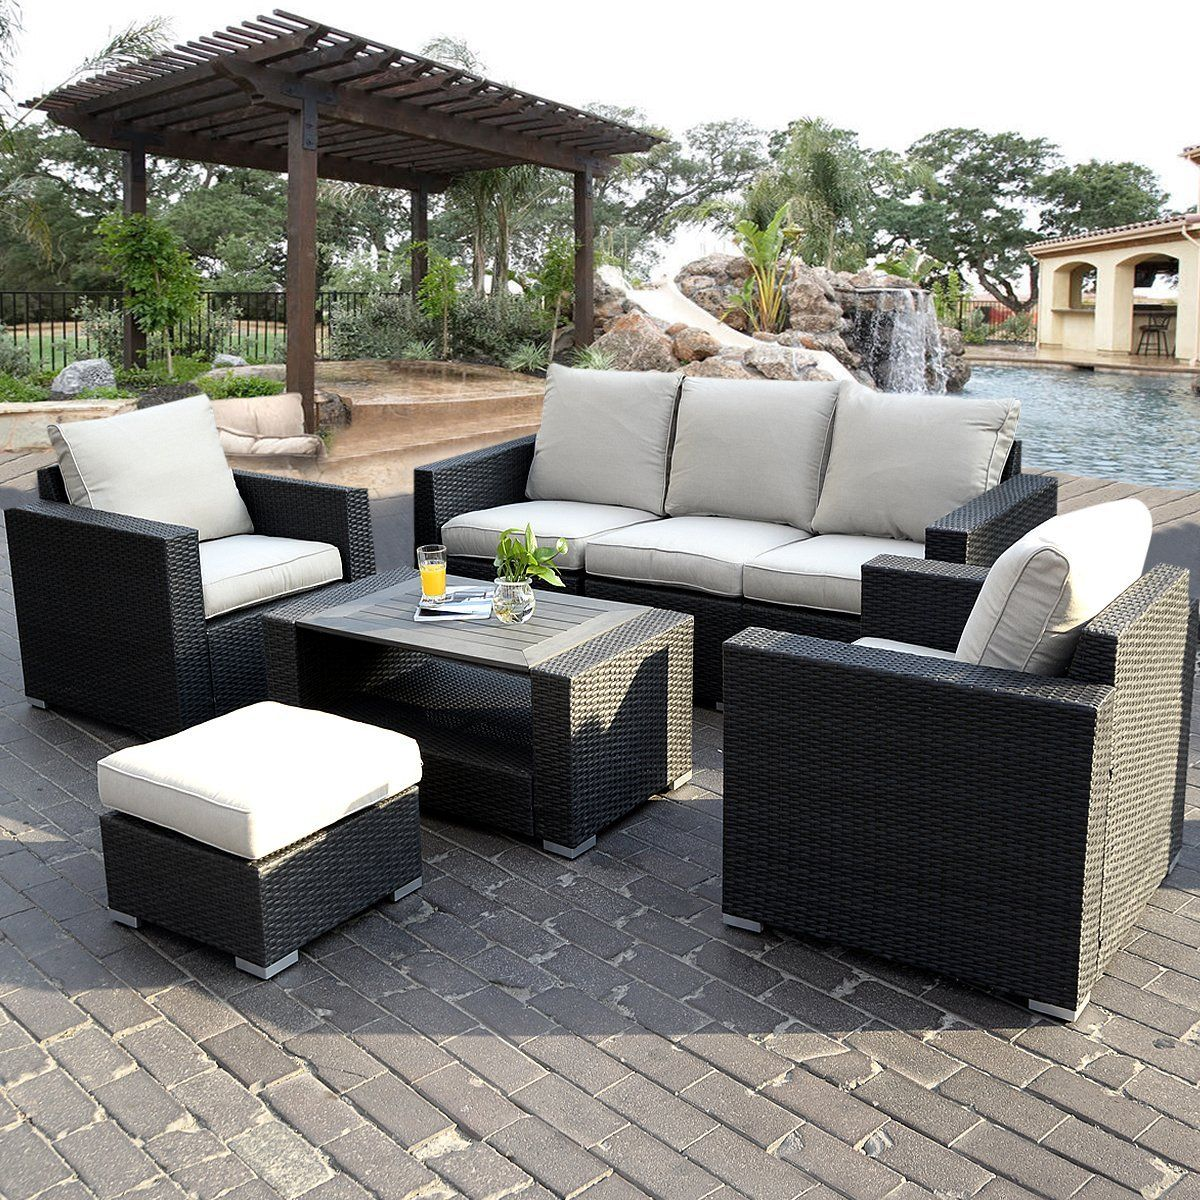 fds 7pc rattan outdoor garden furniture patio corner sofa set pe rh pinterest com Modern Rattan Outdoor Furniture Wicker Rattan Outdoor Furniture